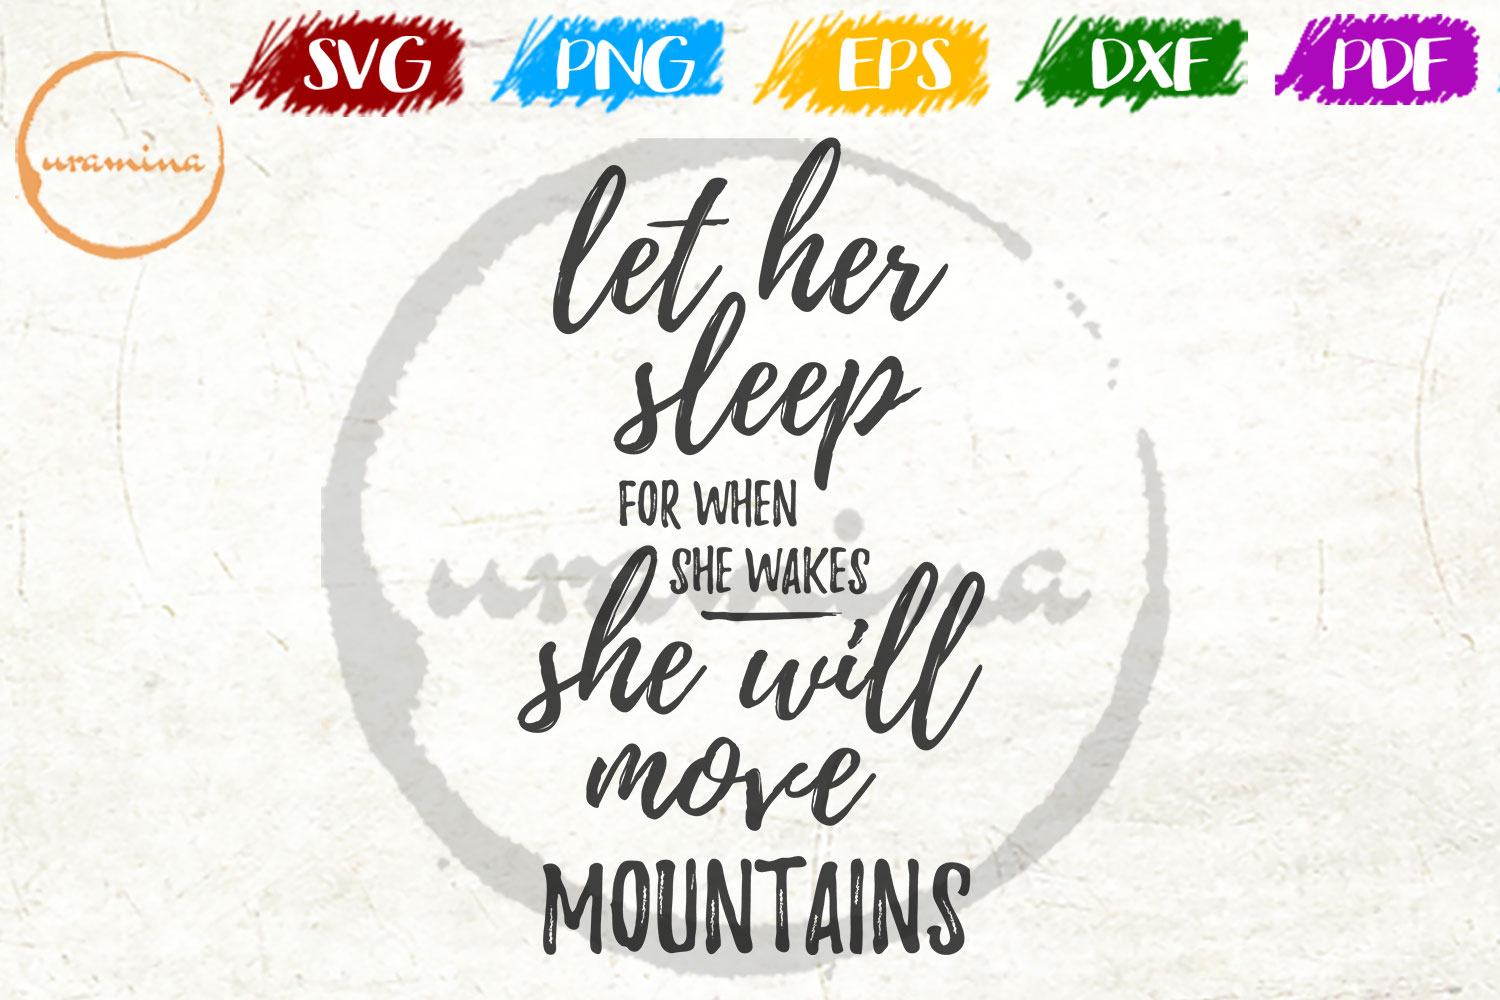 Download Free Let Her Sleep For When She Wakes Grafico Por Uramina Creative for Cricut Explore, Silhouette and other cutting machines.